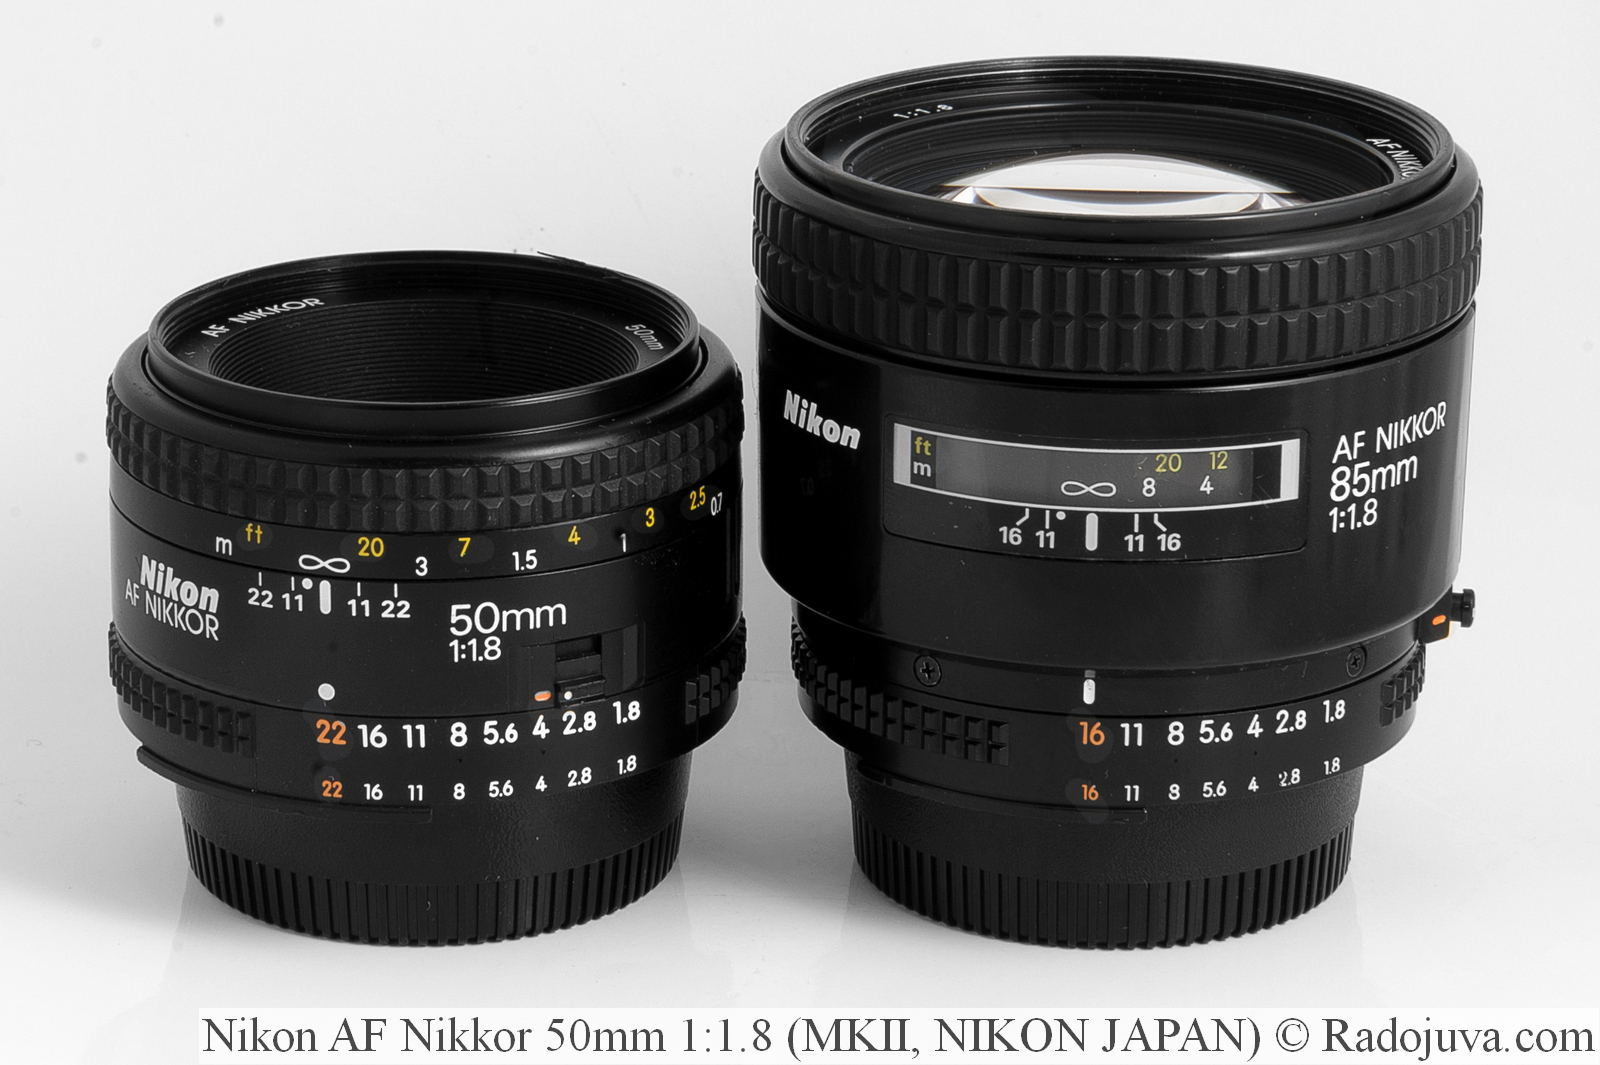 Nikon AF Nikkor 50mm 1: 1.8, MKII, NJ (NIKON JAPAN) and Nikon AF Nikkor 85mm 1: 1.8